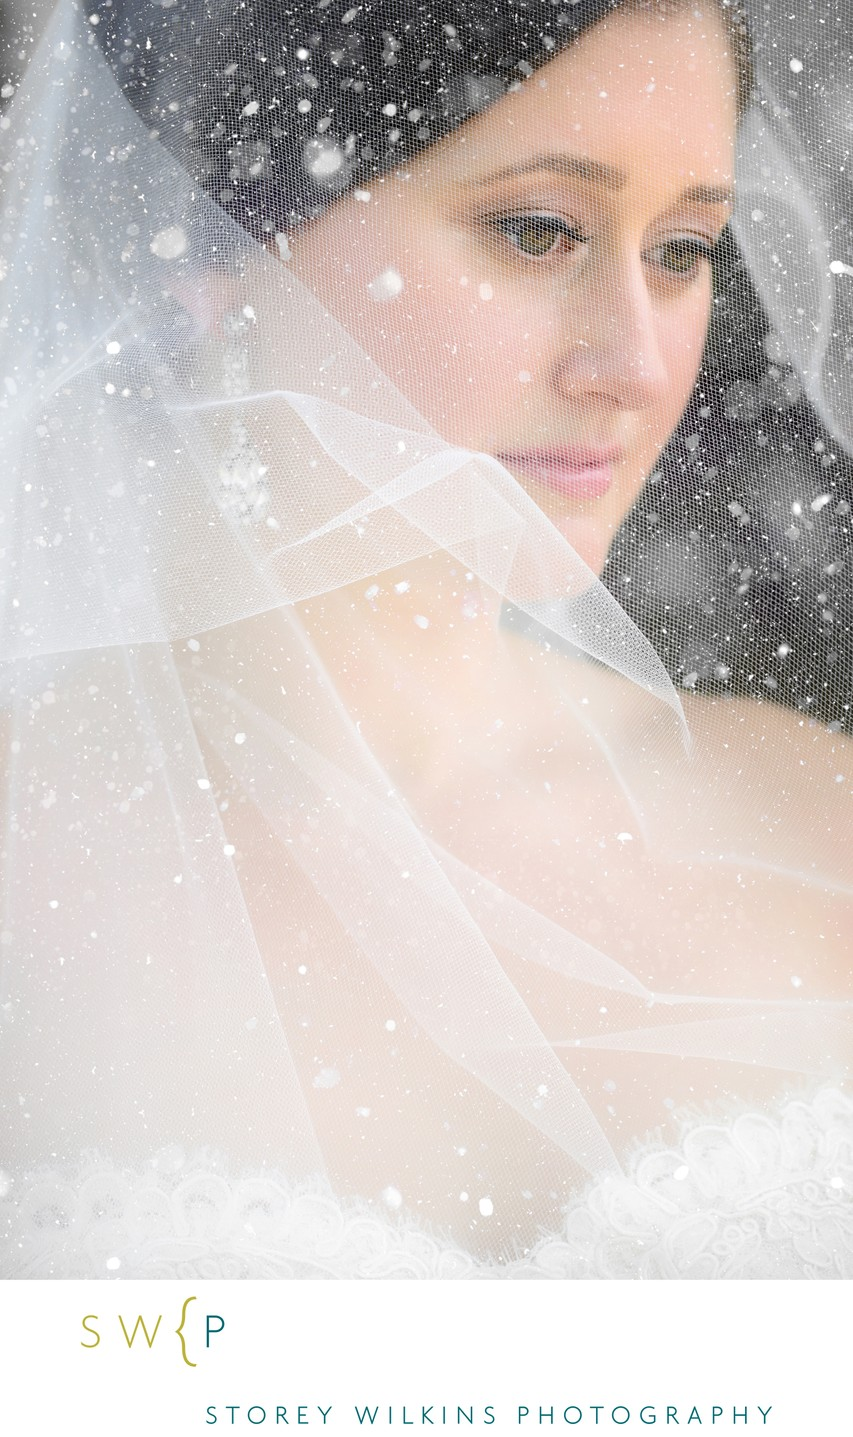 Creative Portrait of the Bride on her Wedding Day